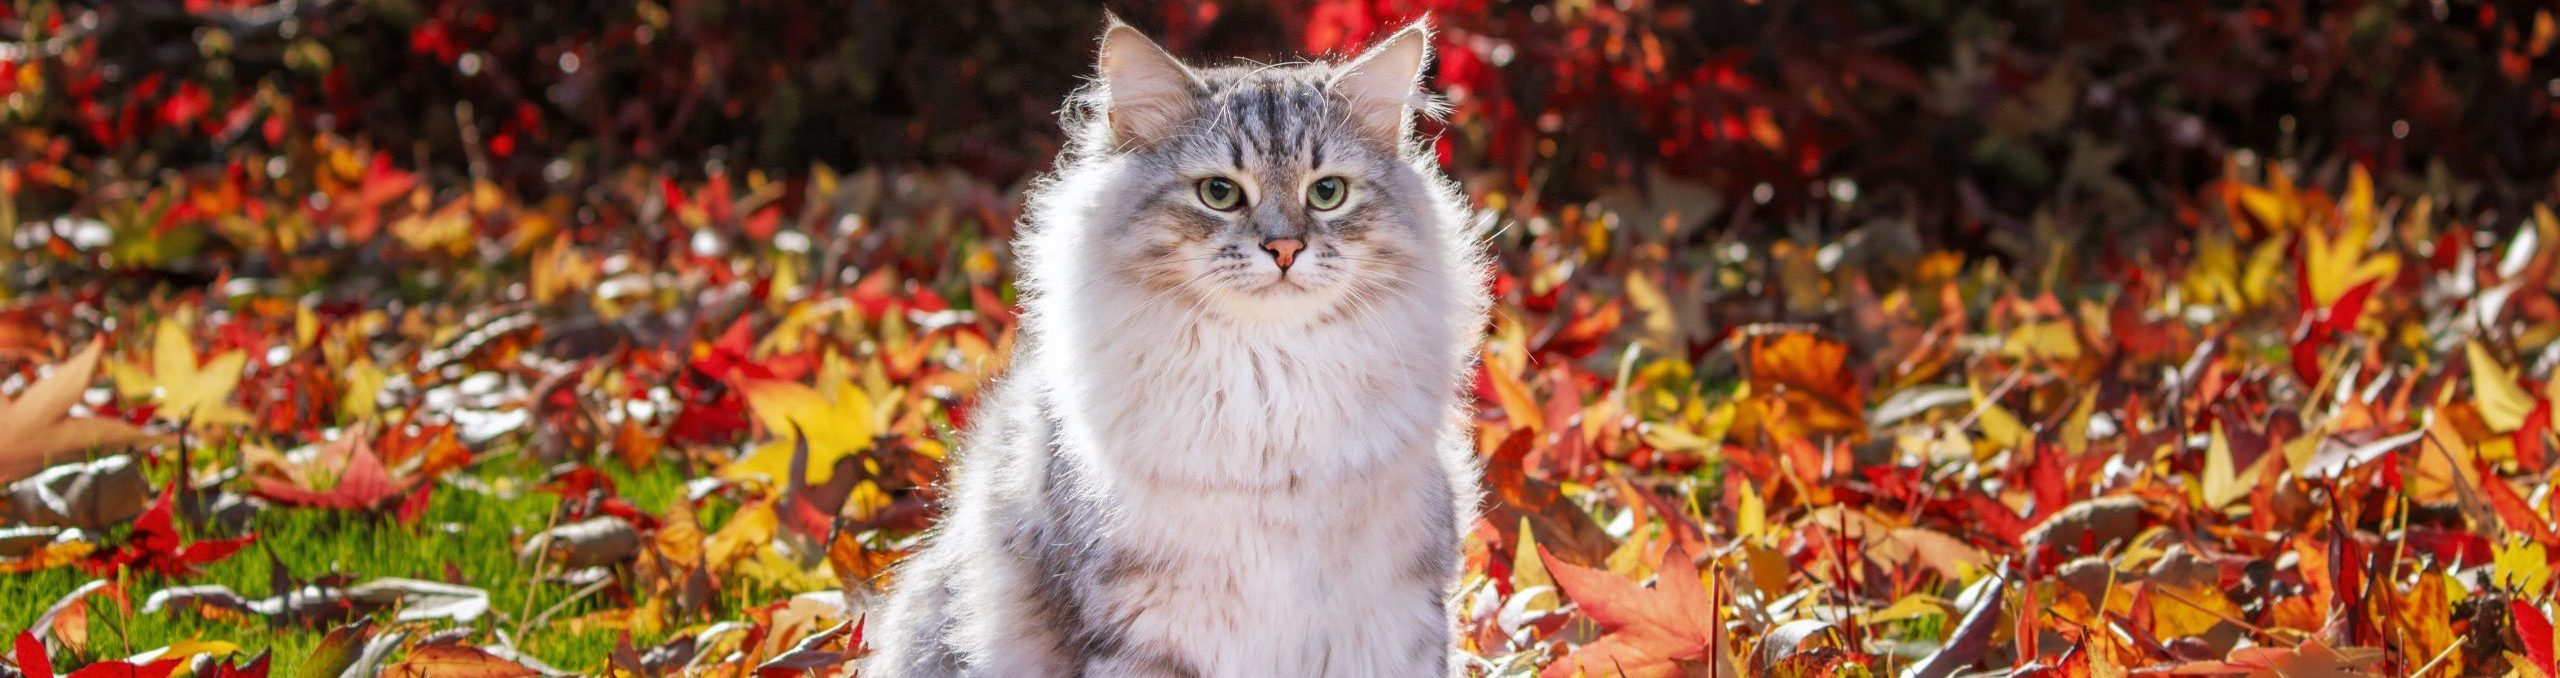 Canadian cat in leaves